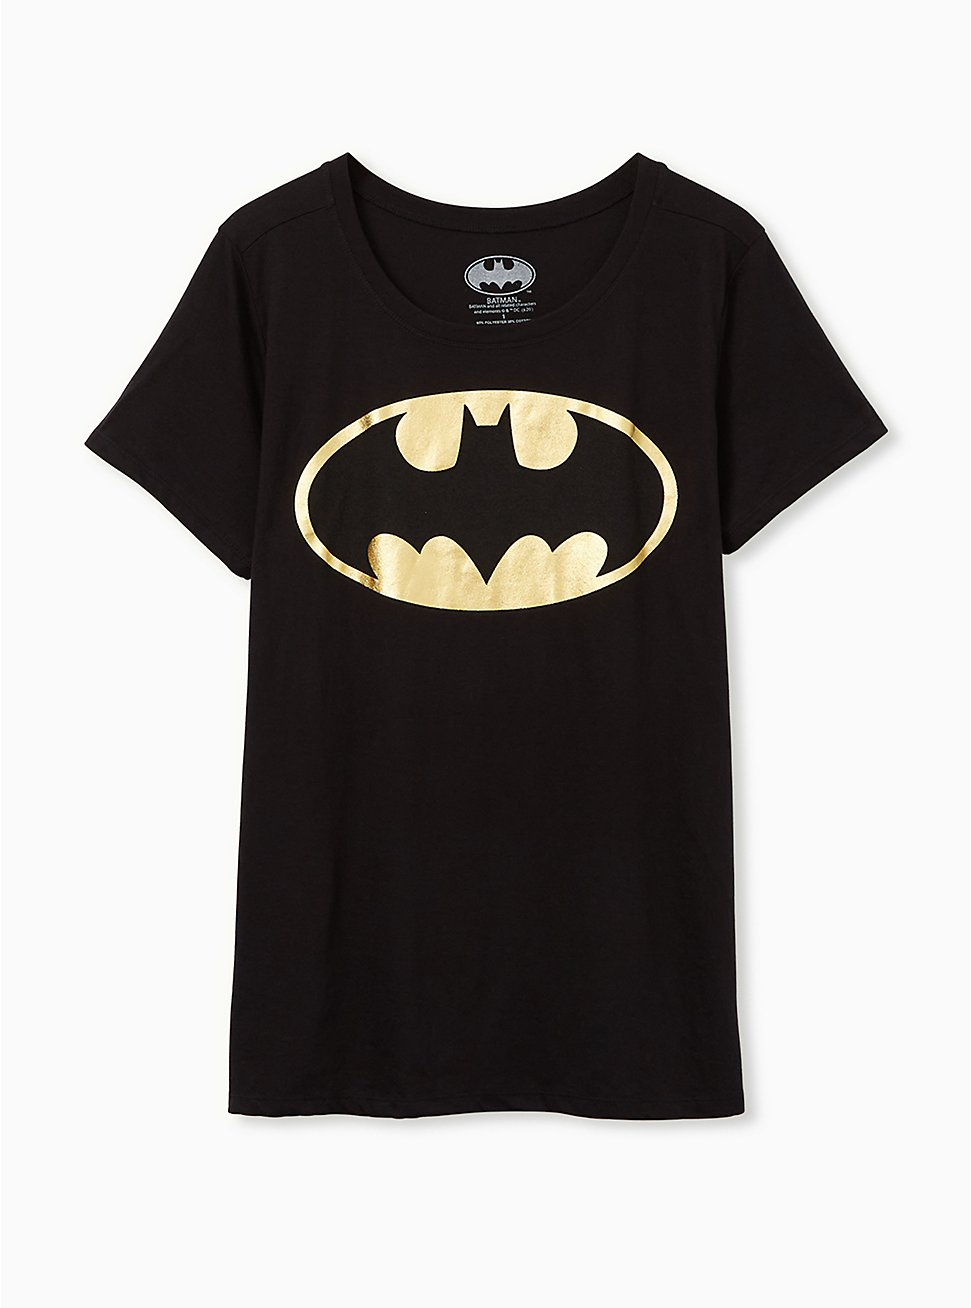 Batman Slim Fit Graphic Crew Tee - Black Foil, DEEP BLACK, hi-res